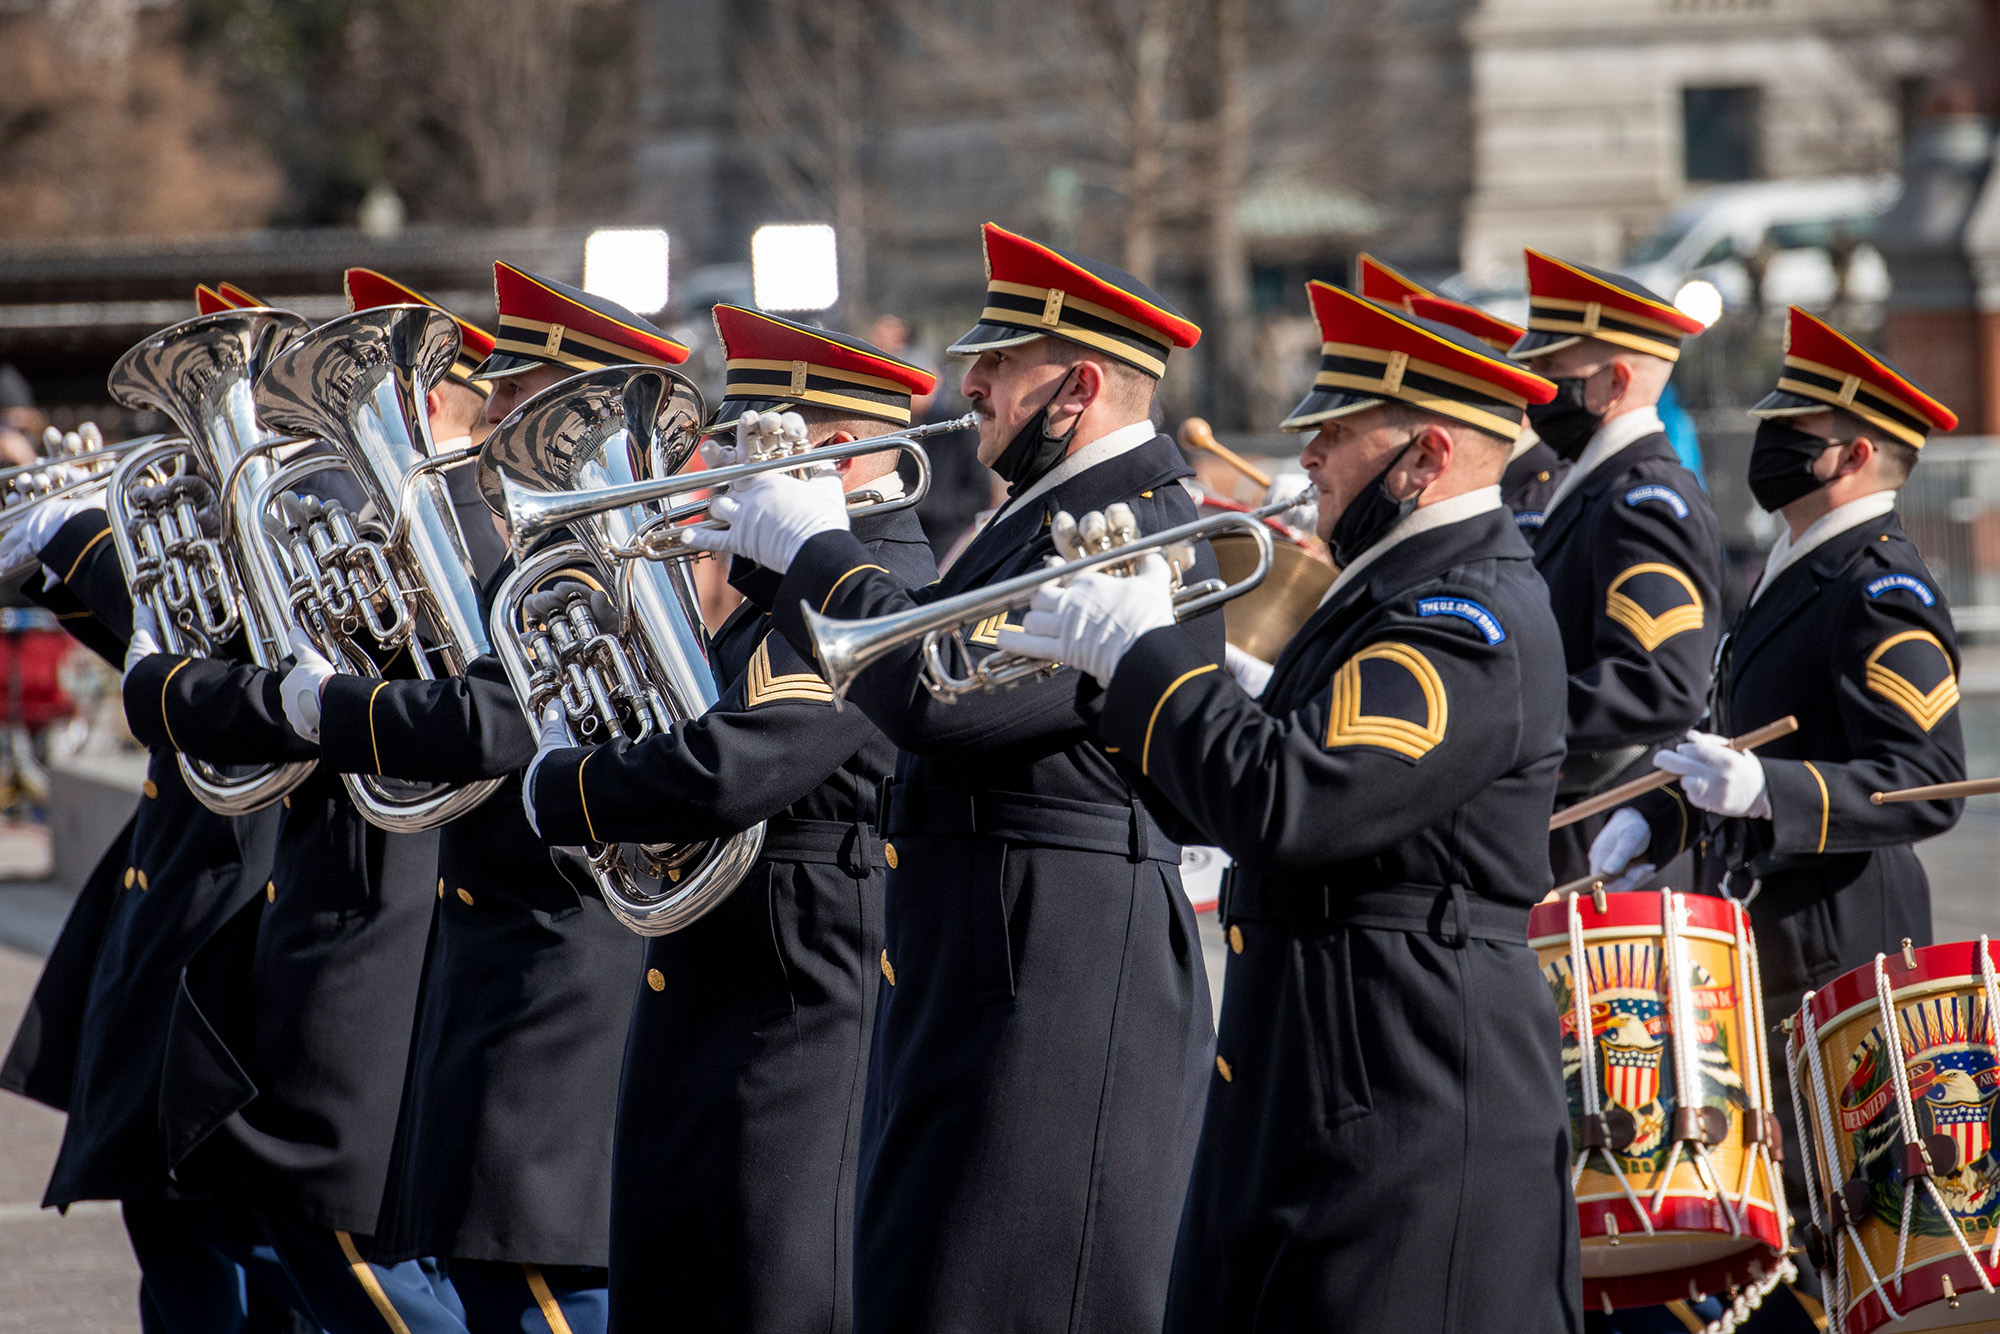 Military bands parade past President Joe Biden and Vice President Kamala Harris as they prepare to depart the Capitol following their taking the Oath of Office as the 46th president and 49th vice president of the United States in Washington on Jan. 20, 2021. (Rod Lamkey/Pool, AFP via Getty Images)